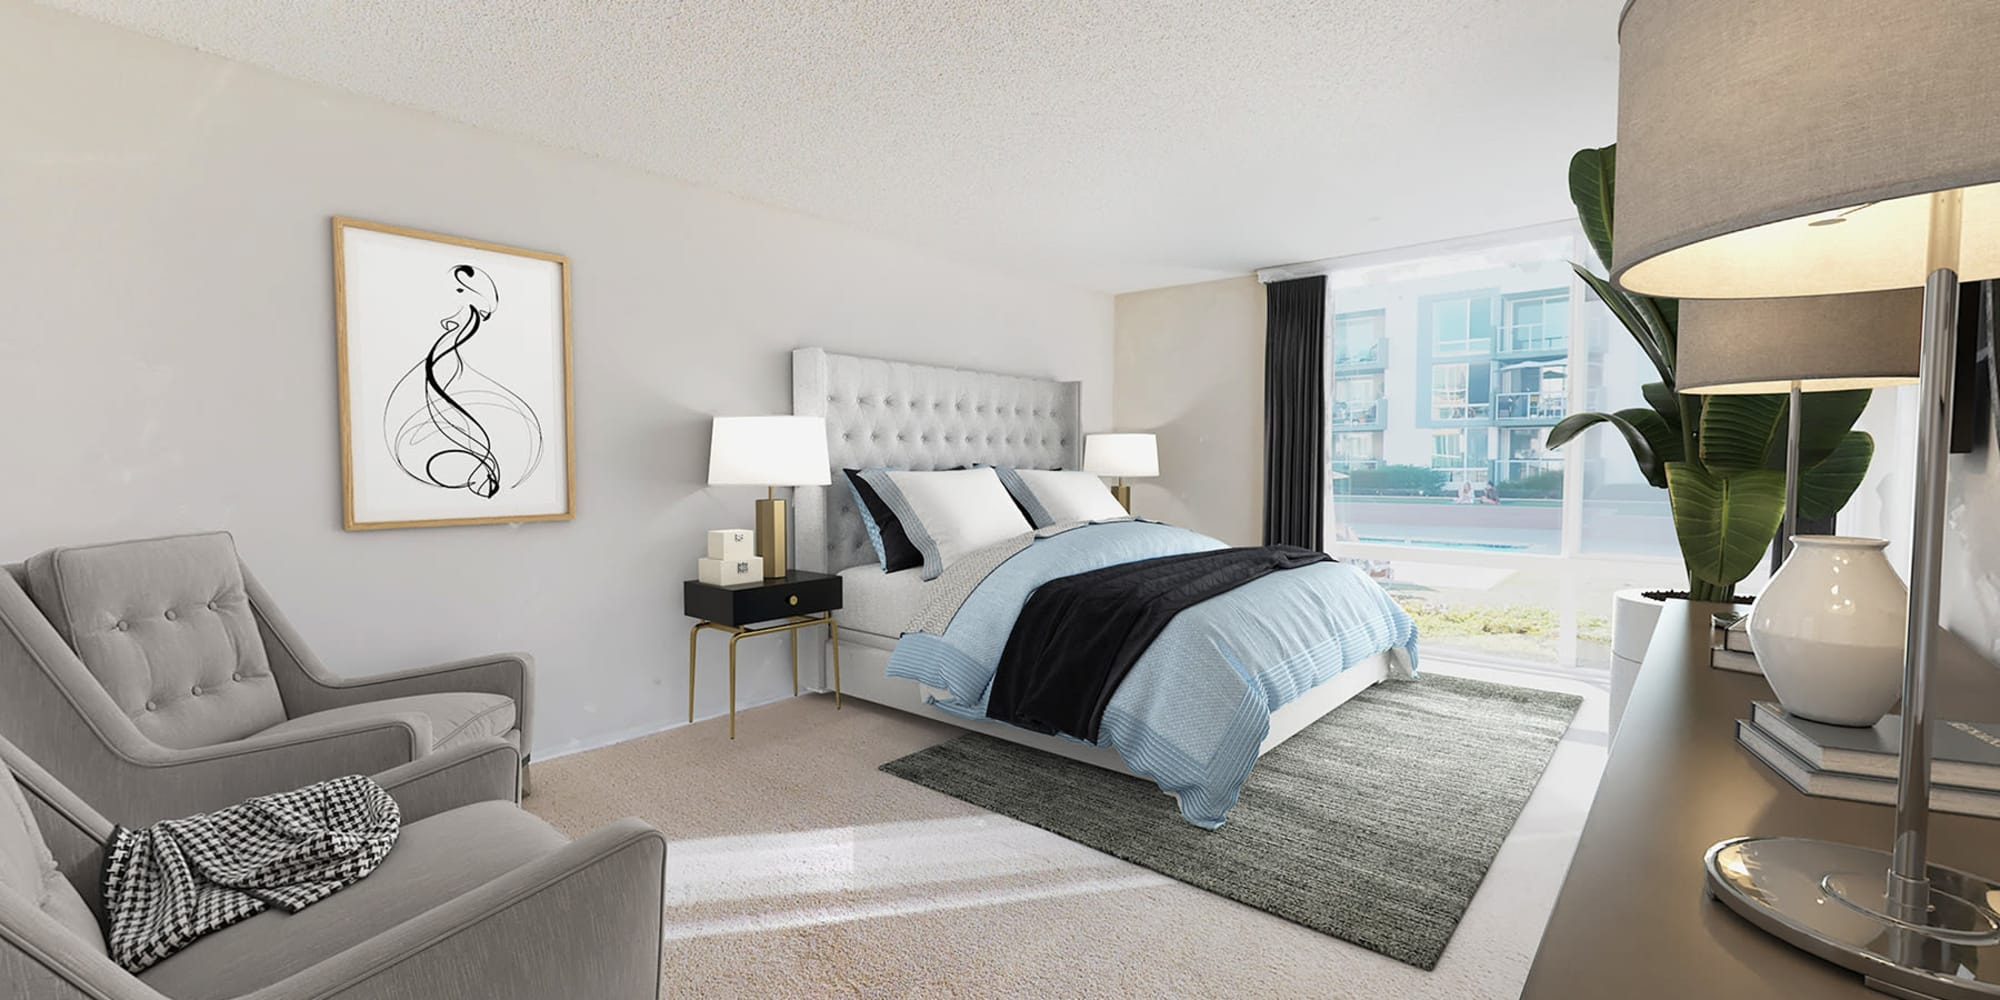 Spacious primary bedroom with plush carpeting and floor-to-ceiling windows at Waters Edge at Marina Harbor in Marina Del Rey, California